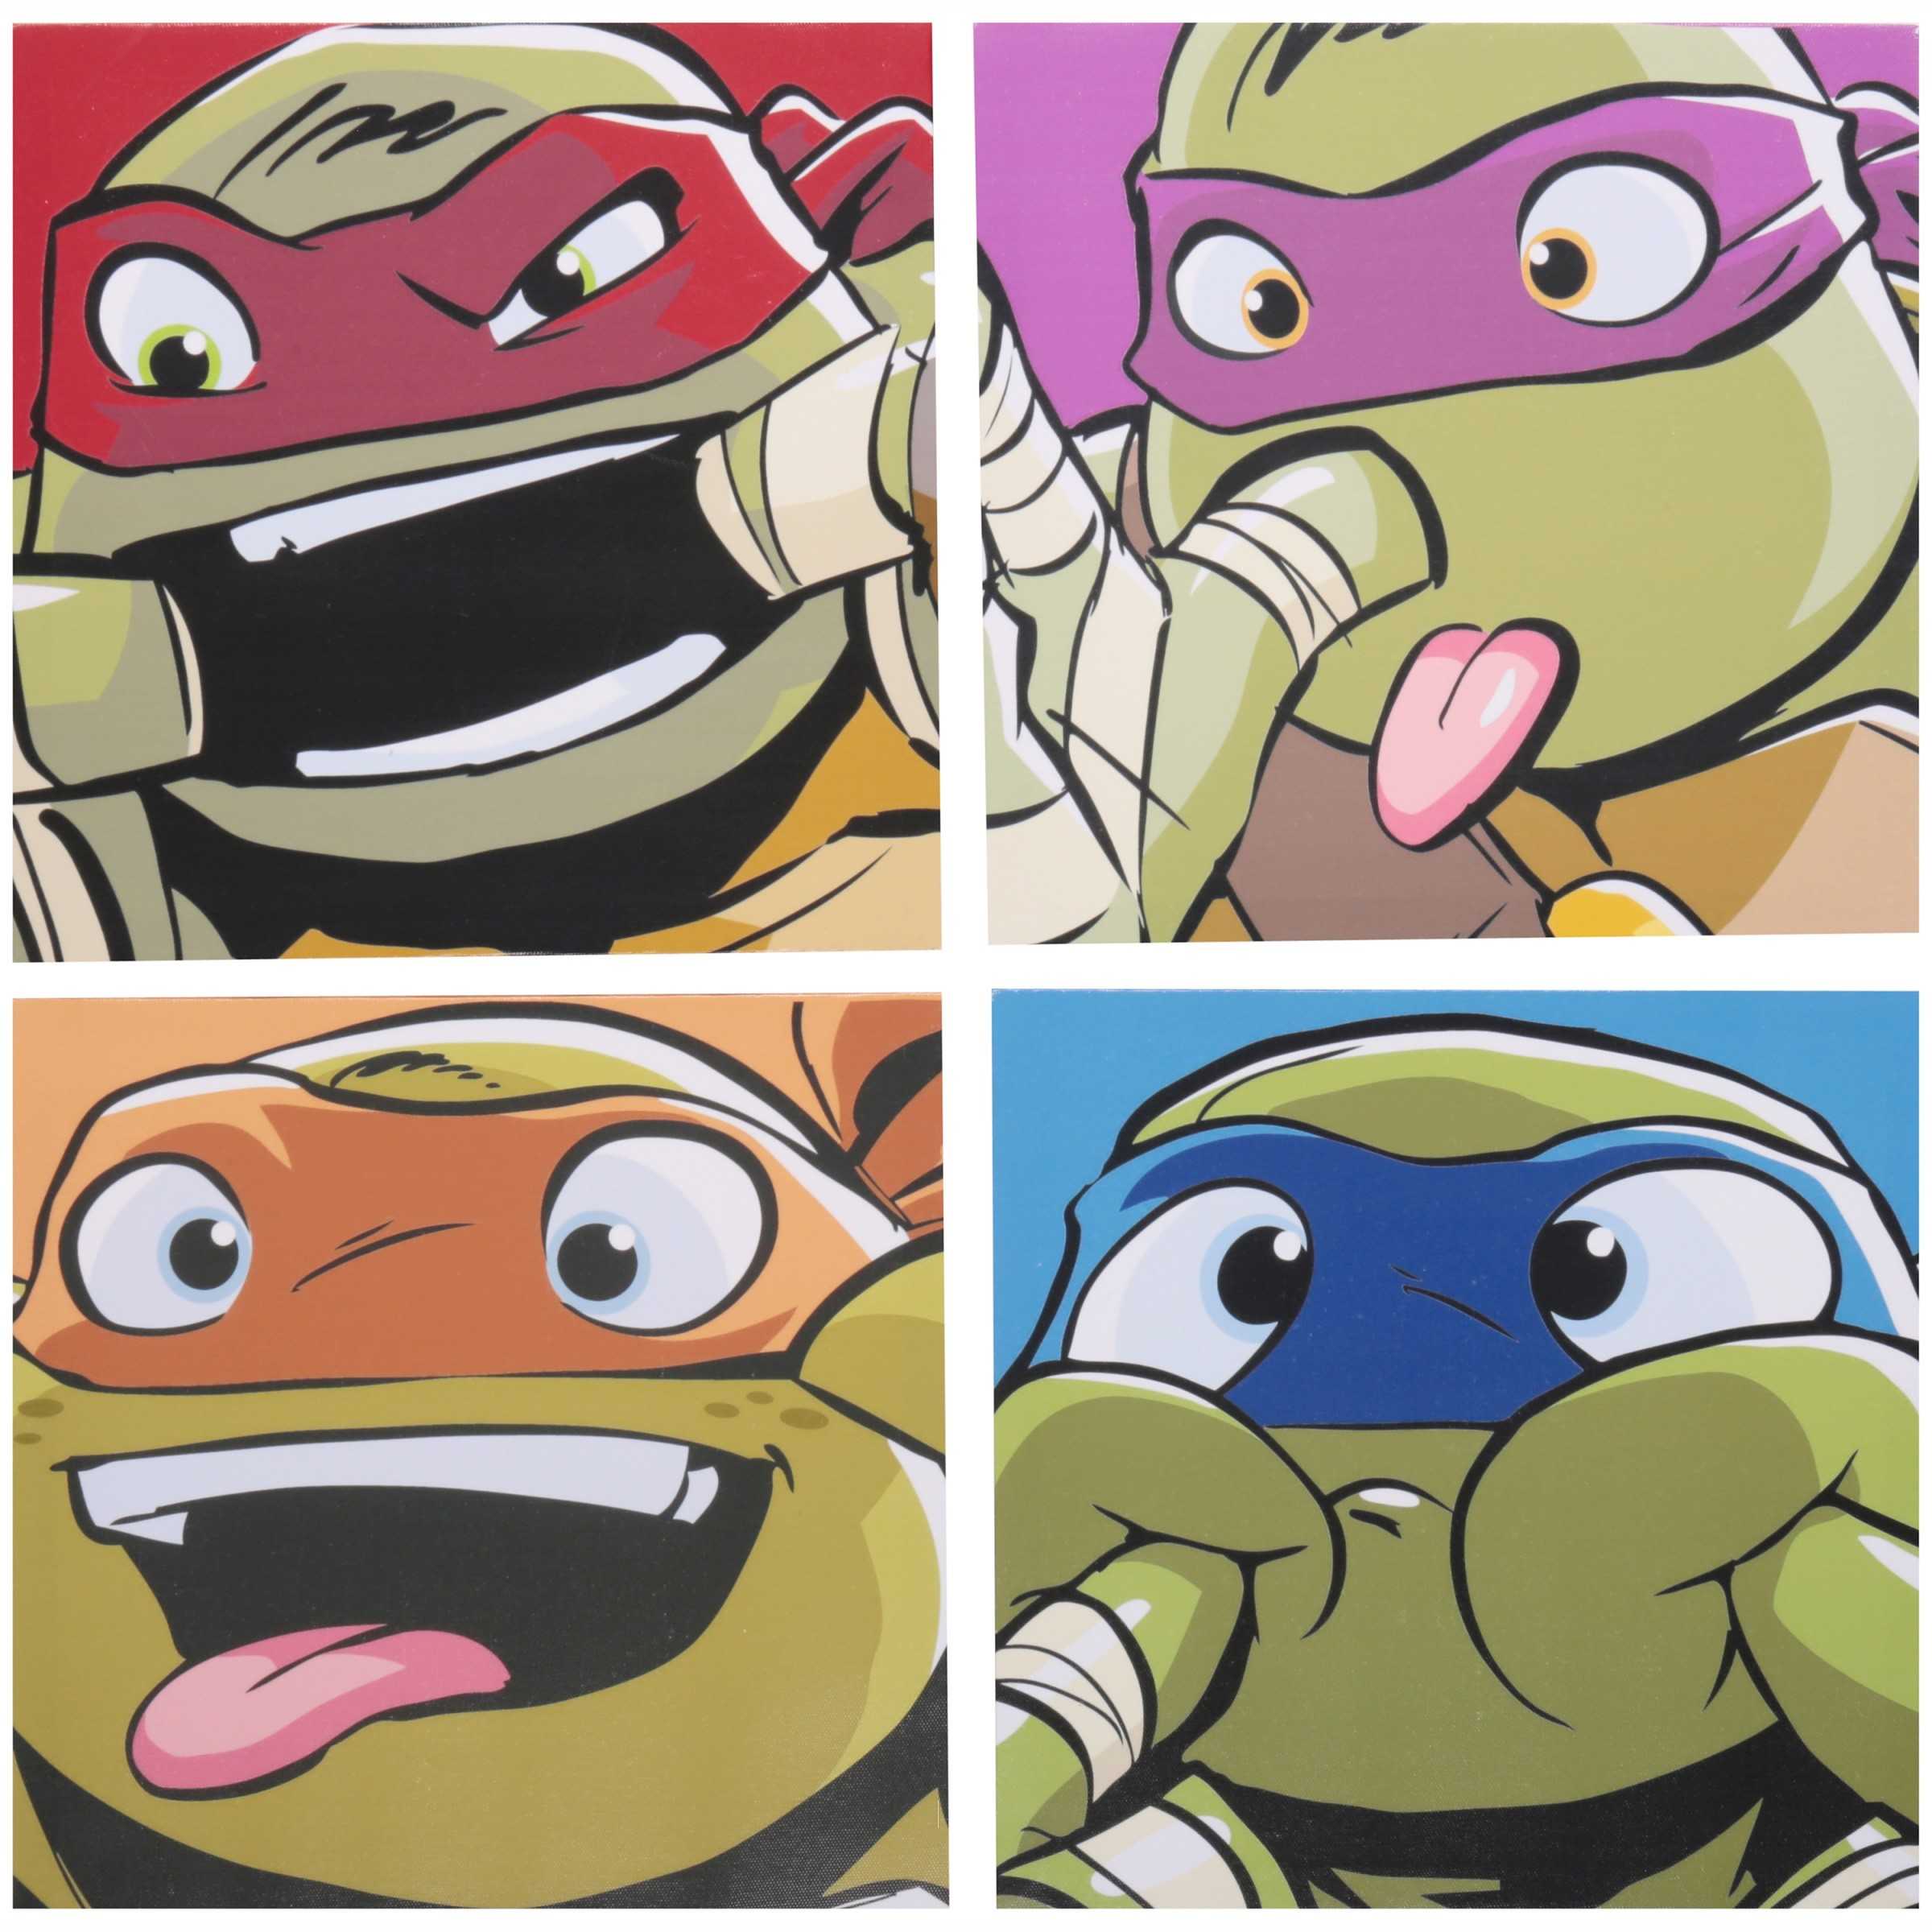 Nickelodeon Teenage Mutant Ninja Turtles Canvas Wall Art 4 pc Pack